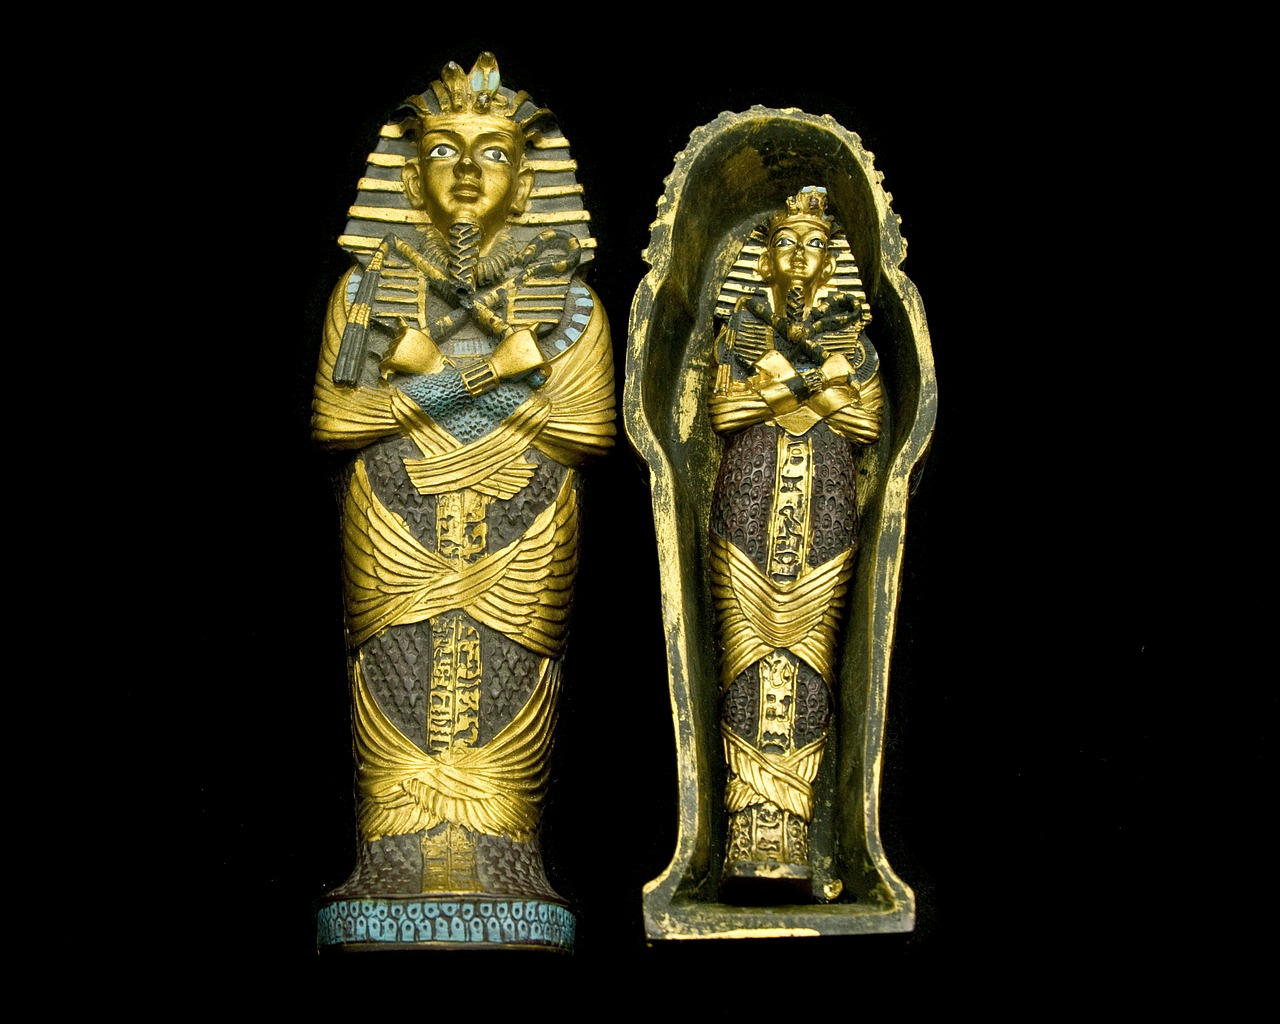 Tomb robbers believed that knocking Egyptian sarcophagi's noses off would forestall curses